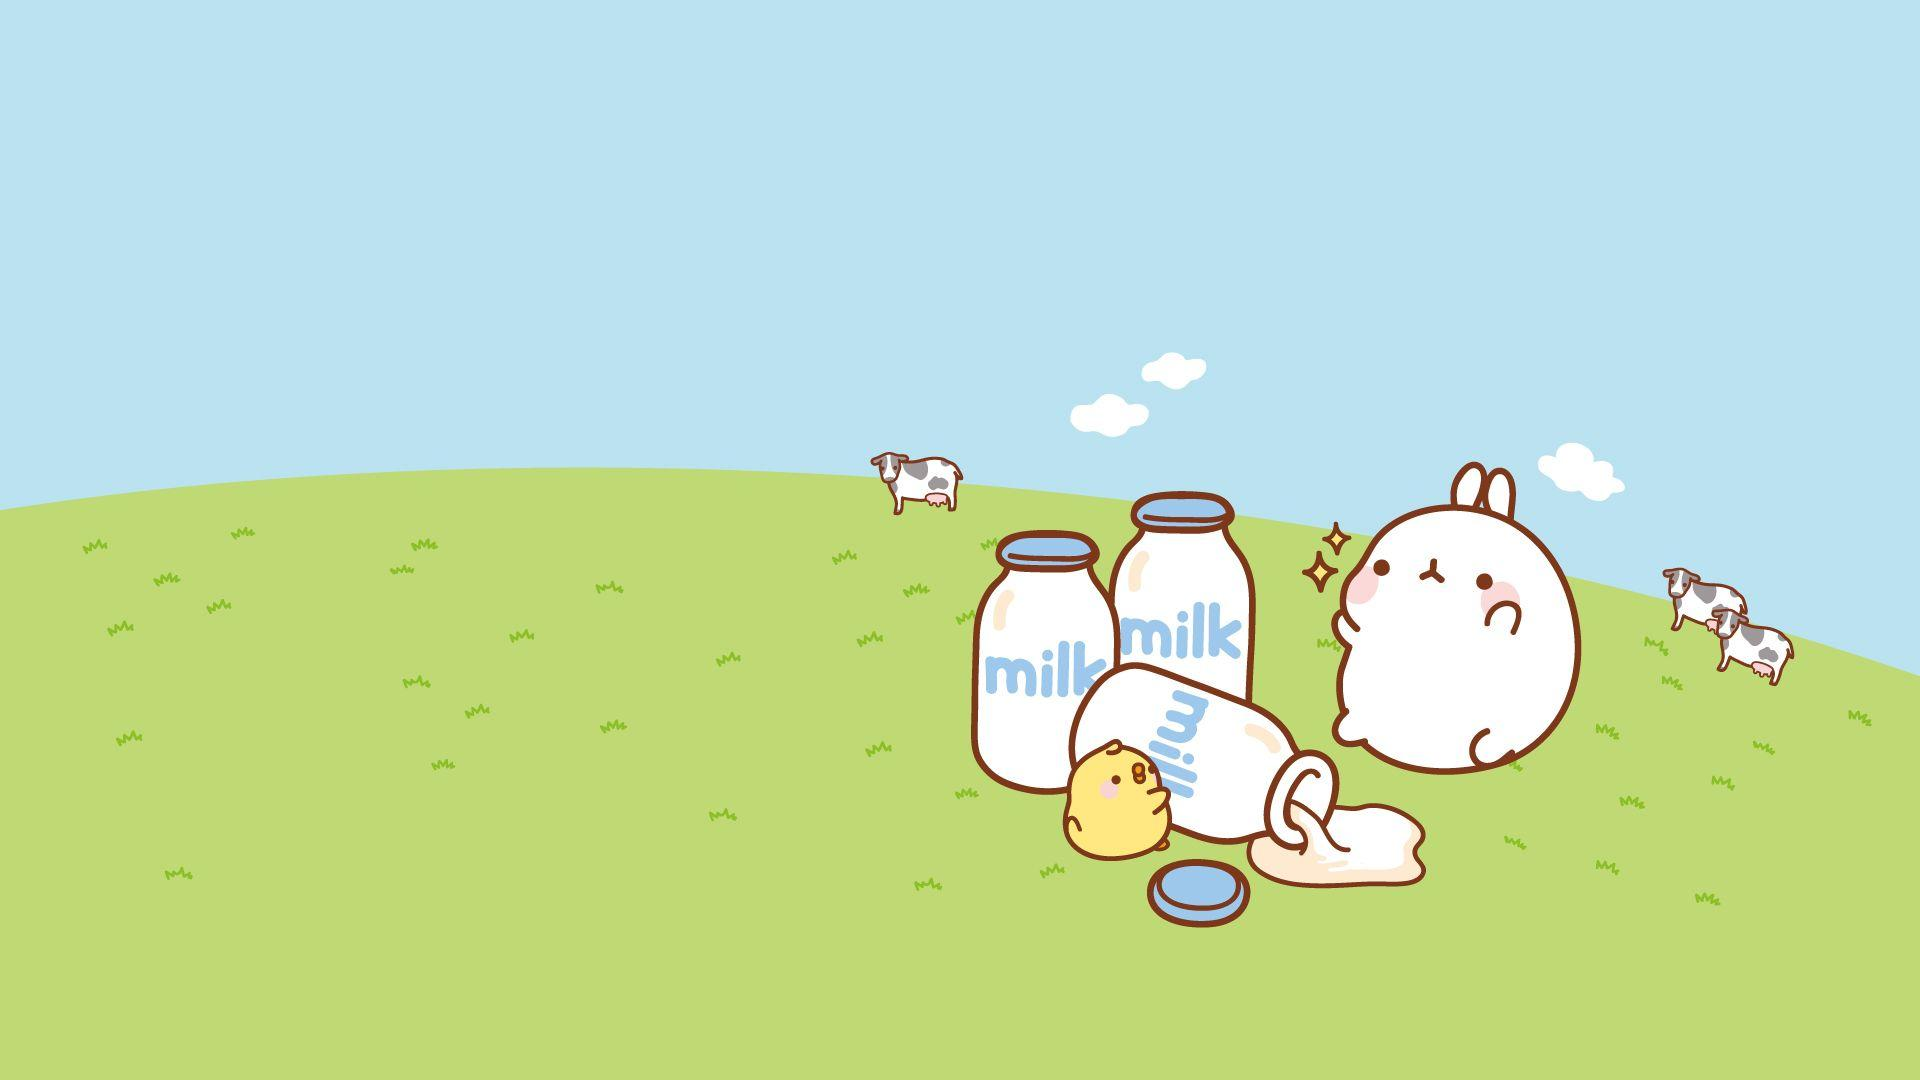 Wallpaper Molang by leyfzalley on DeviantArt